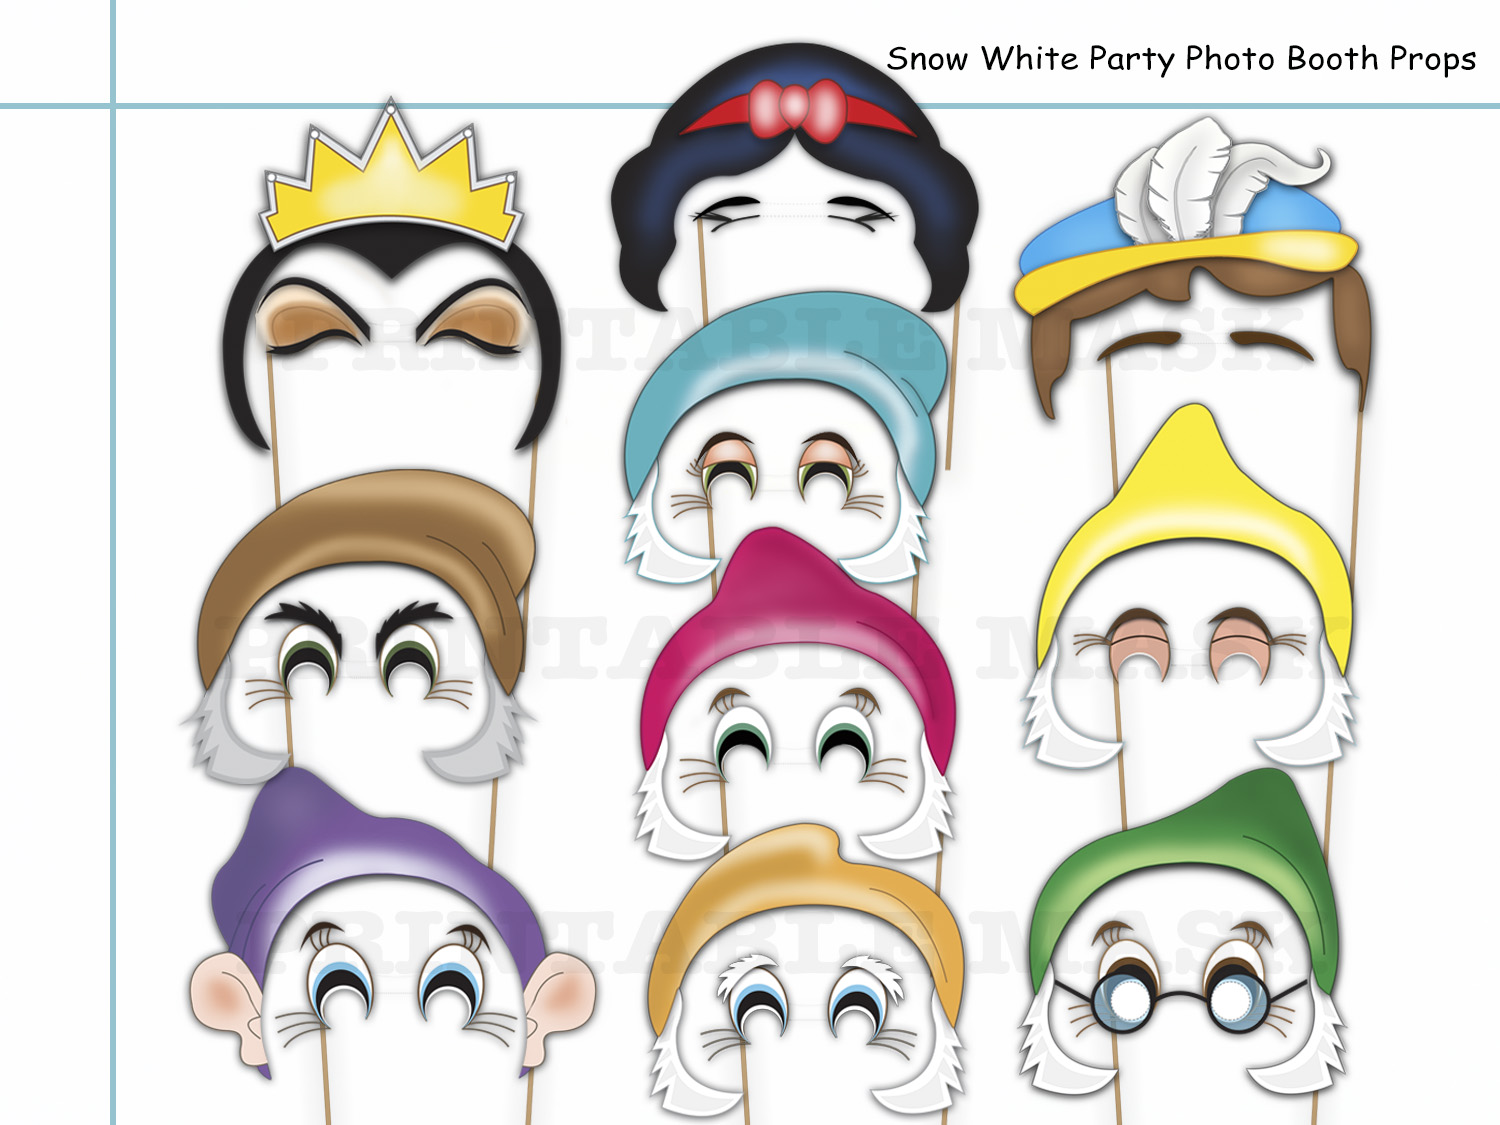 Snow White Party Photo Booth Props Set